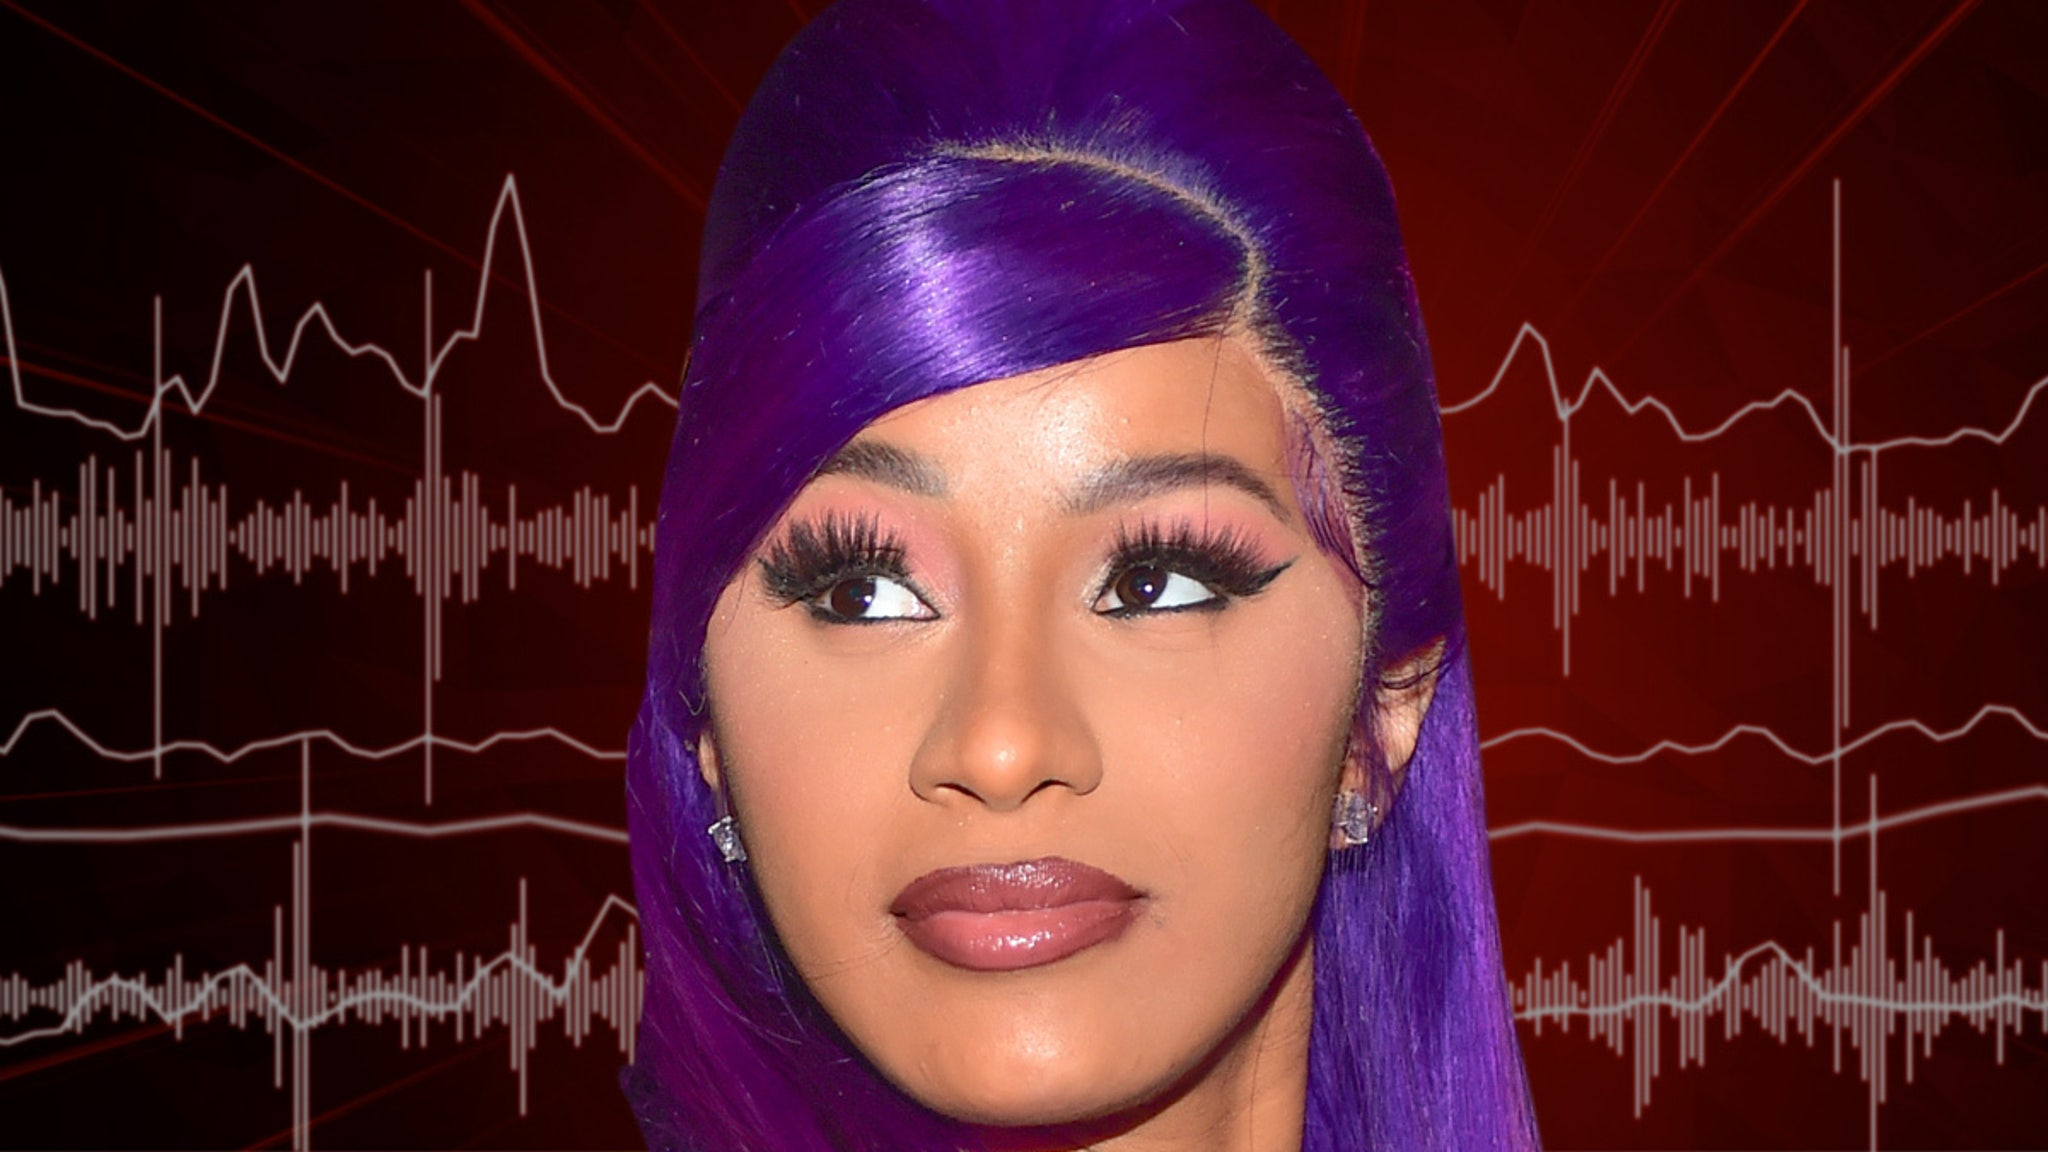 Cardi B Shouts Out 'Very Strong Girl' Fighting Brain Cancer - TMZ